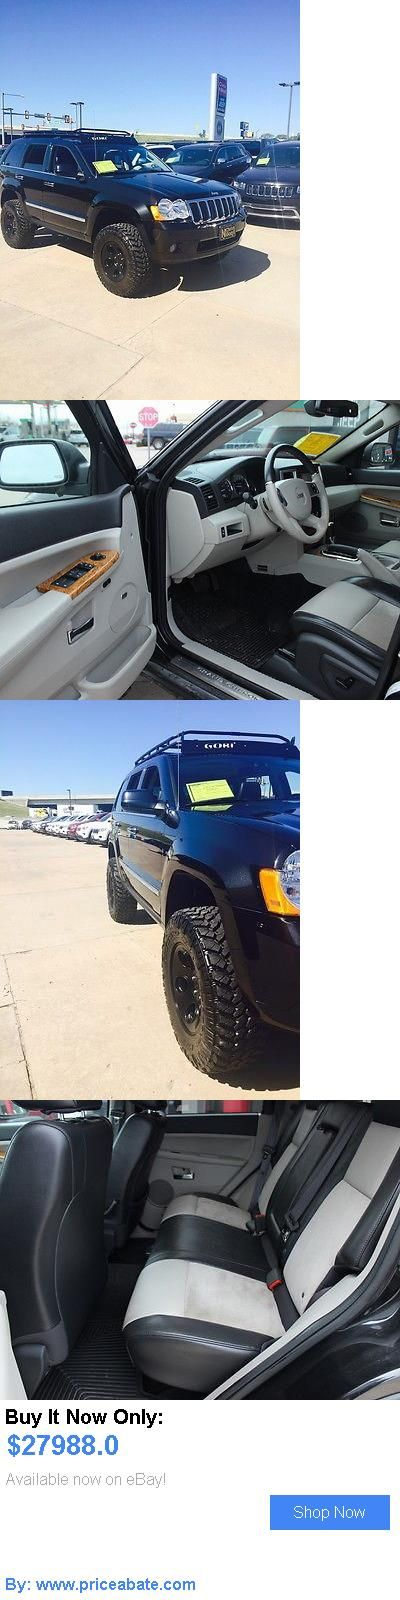 SUVs: Jeep: Grand Cherokee Limited 2010 Jeep Grand Cherokee Limited 4 X 4 Suv BUY IT NOW ONLY: $27988.0 #priceabateSUVs OR #priceabate